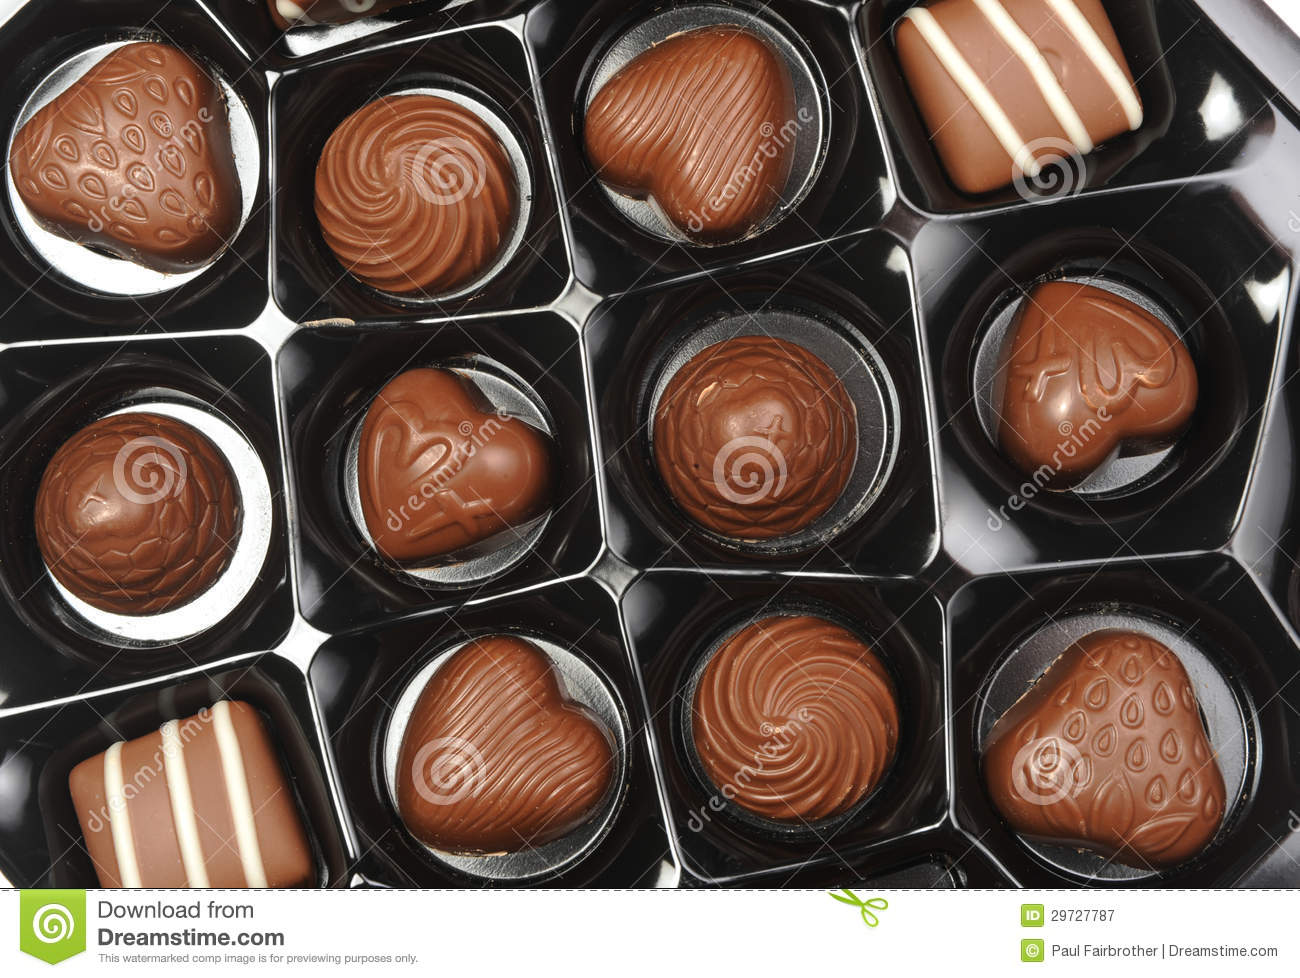 Box Of Chocolates 1 Stock Photo - Image: 421800